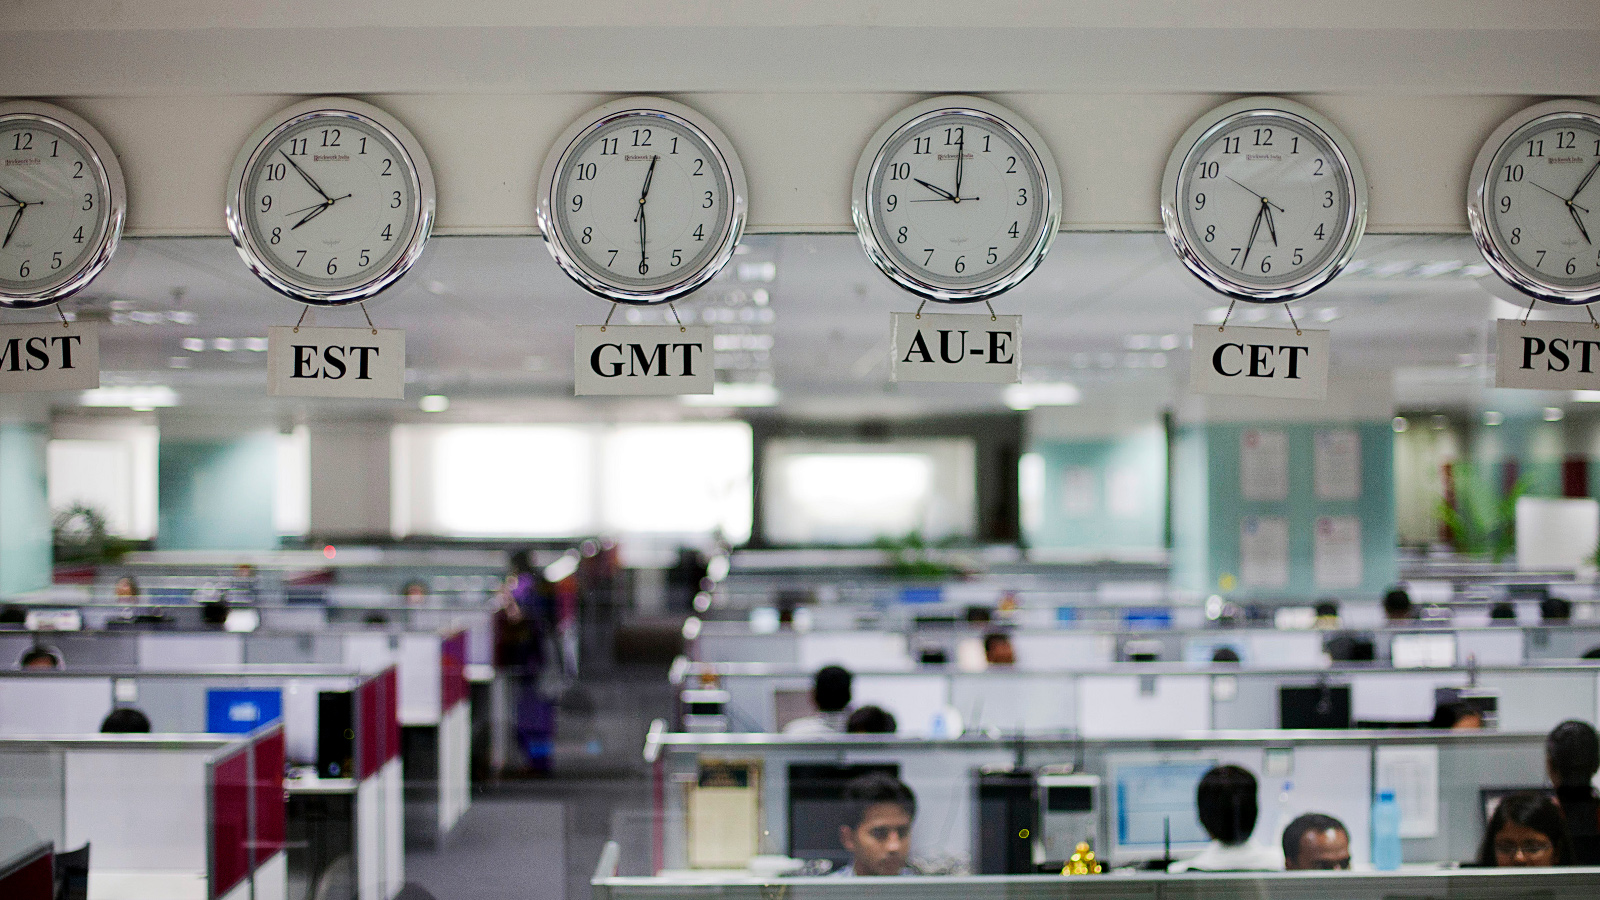 Workers are pictured beneath clocks displaying time zones in various parts of the world at an outsourcing centre in Bangalore, February 29, 2012. India's IT industry, with Bangalore firms forming the largest component, is now worth an annual $100 billion and growing 14 percent per year, one of the few bright spots in an economy blighted by policy stagnation and political instability. Picture taken on February 29, 2012.